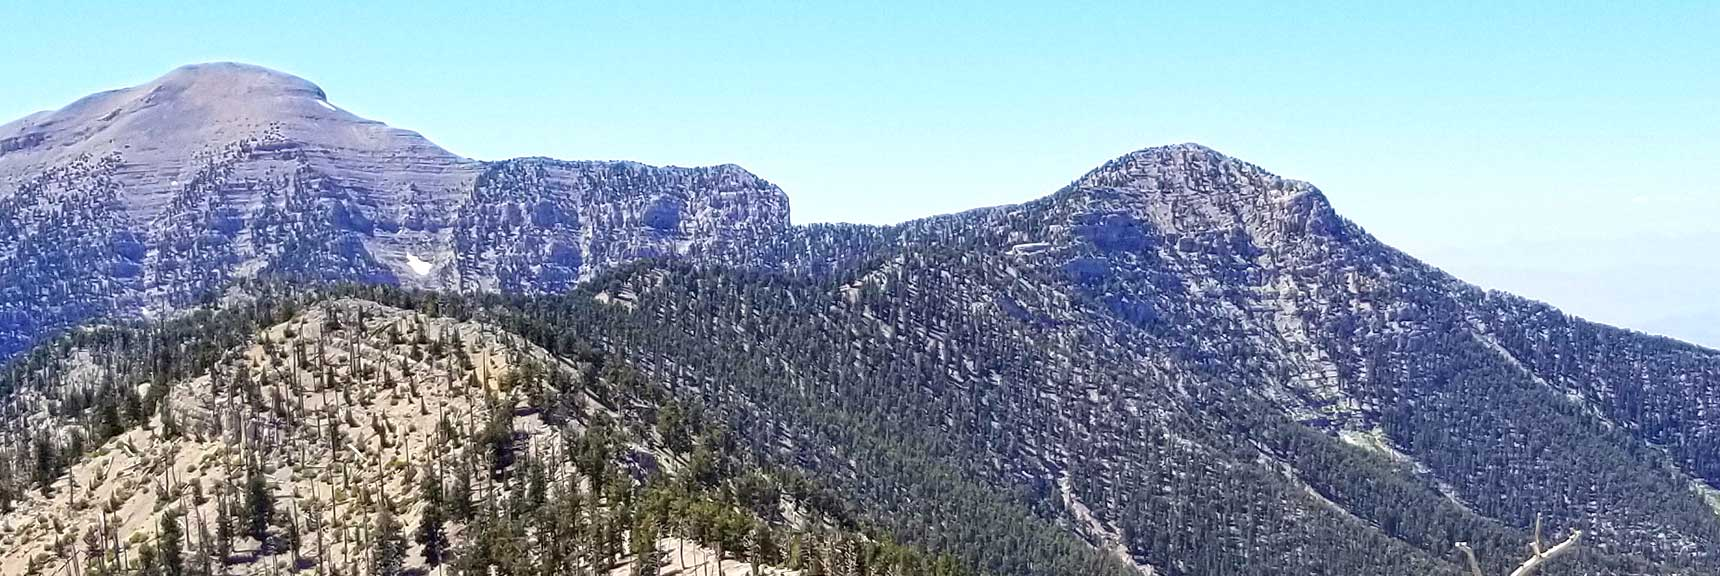 Lee Peak from Lee Canyon   Mt Charleston Wilderness   Spring Mountains, Nevada